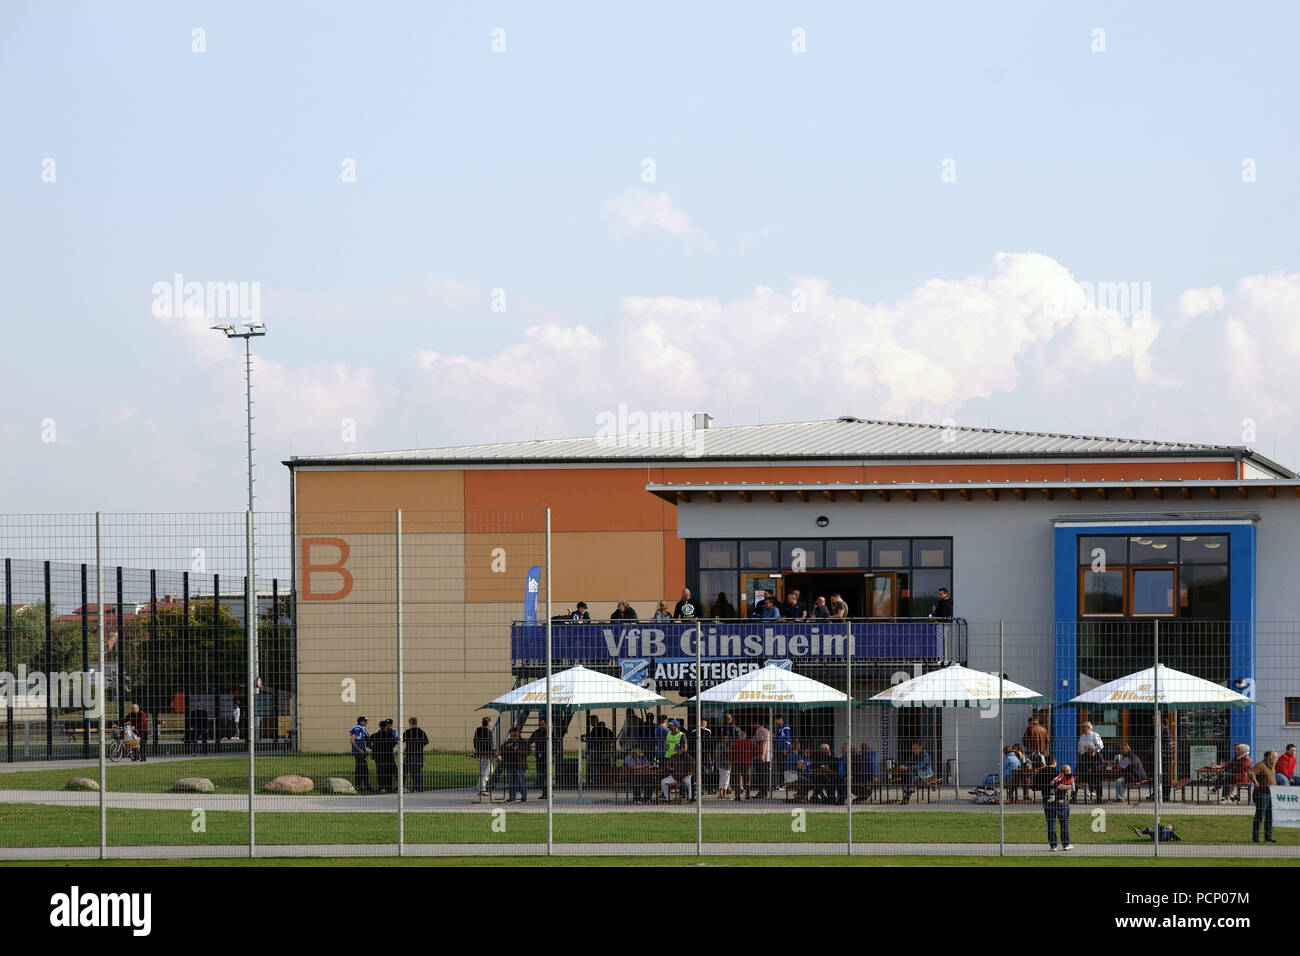 The building of the football club VFB Ginsheim at the youth and sports park in Ginsheim. - Stock Image